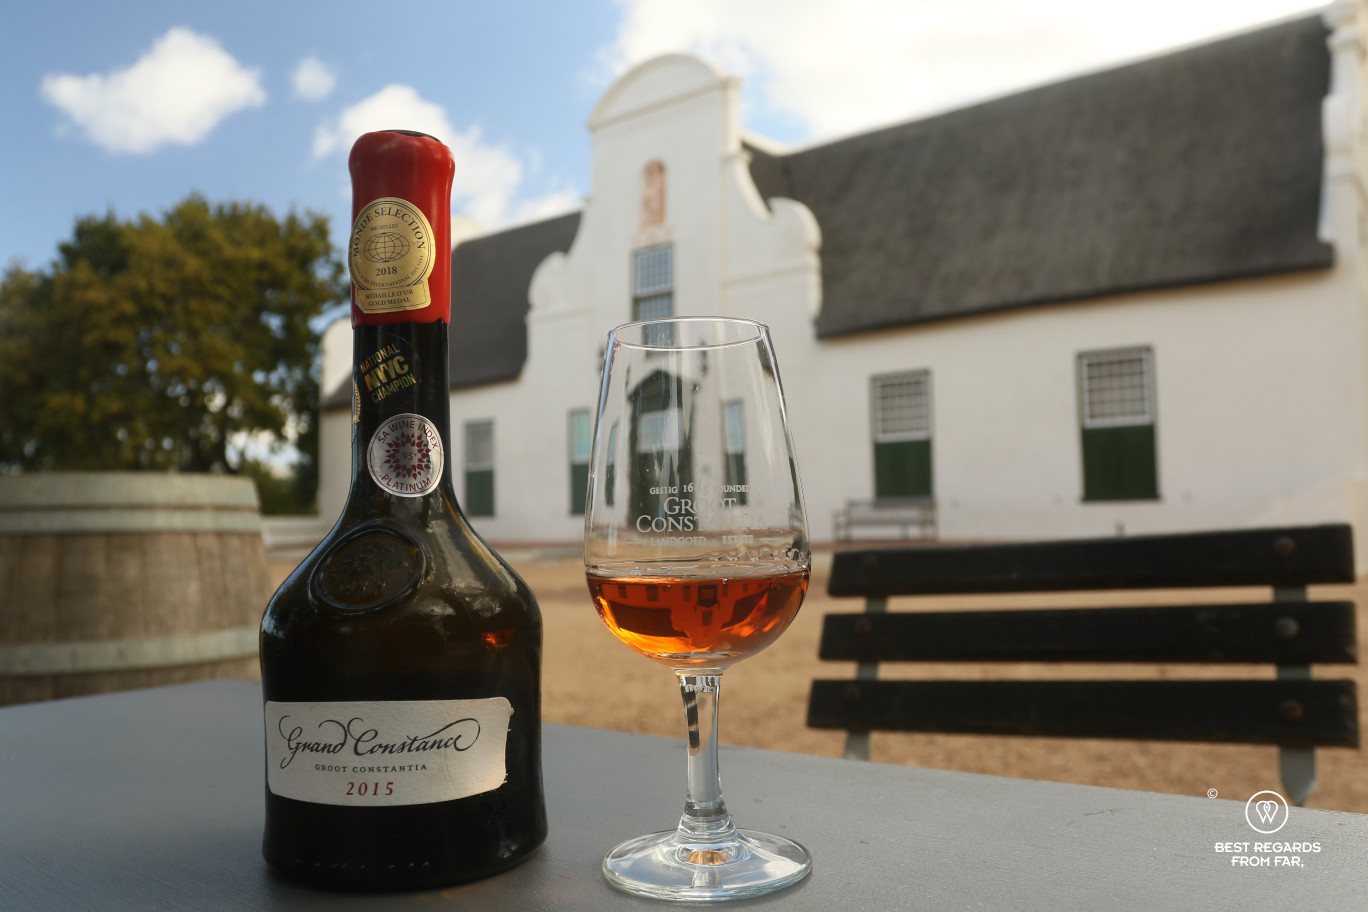 Grand Constance sweet wine in front of Cape Dutch manor, Groot Constantia, Constantia wine route, Cape Town